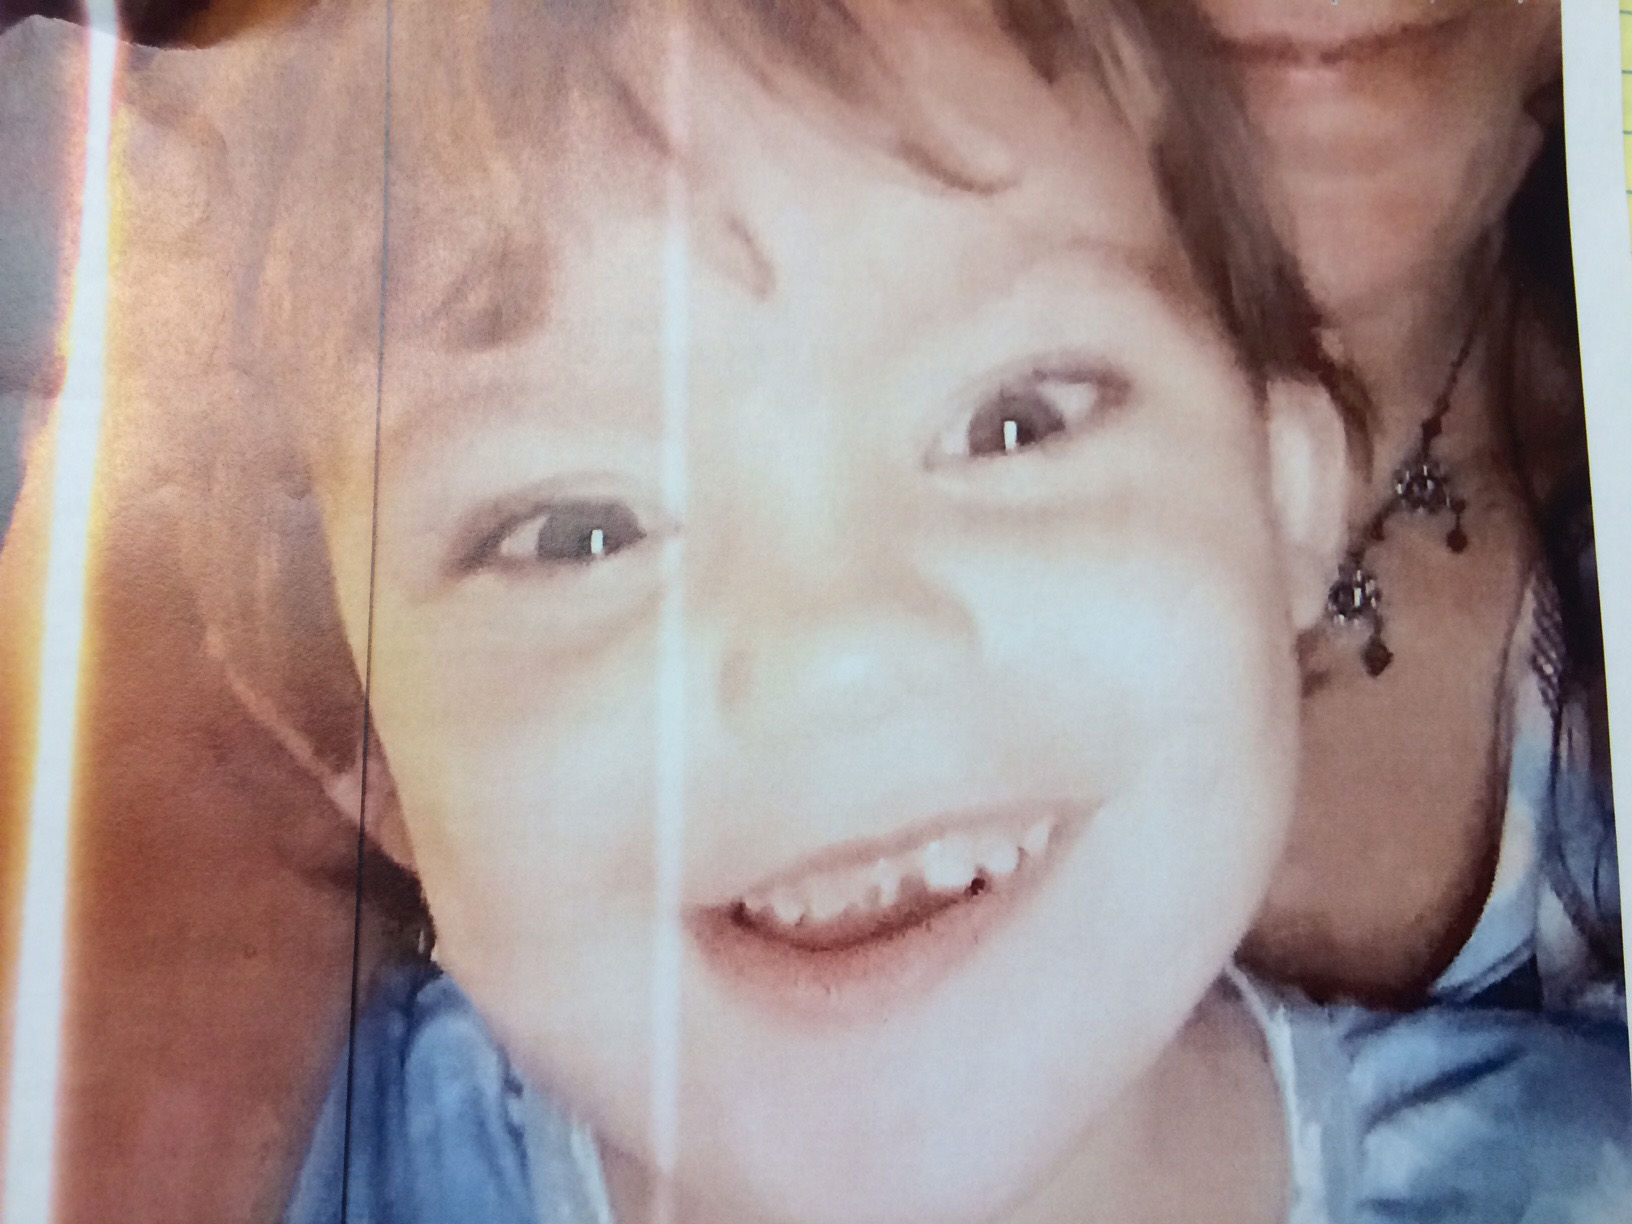 4-Year-Old Abducted In Virginia, Could Be Heading To NJ